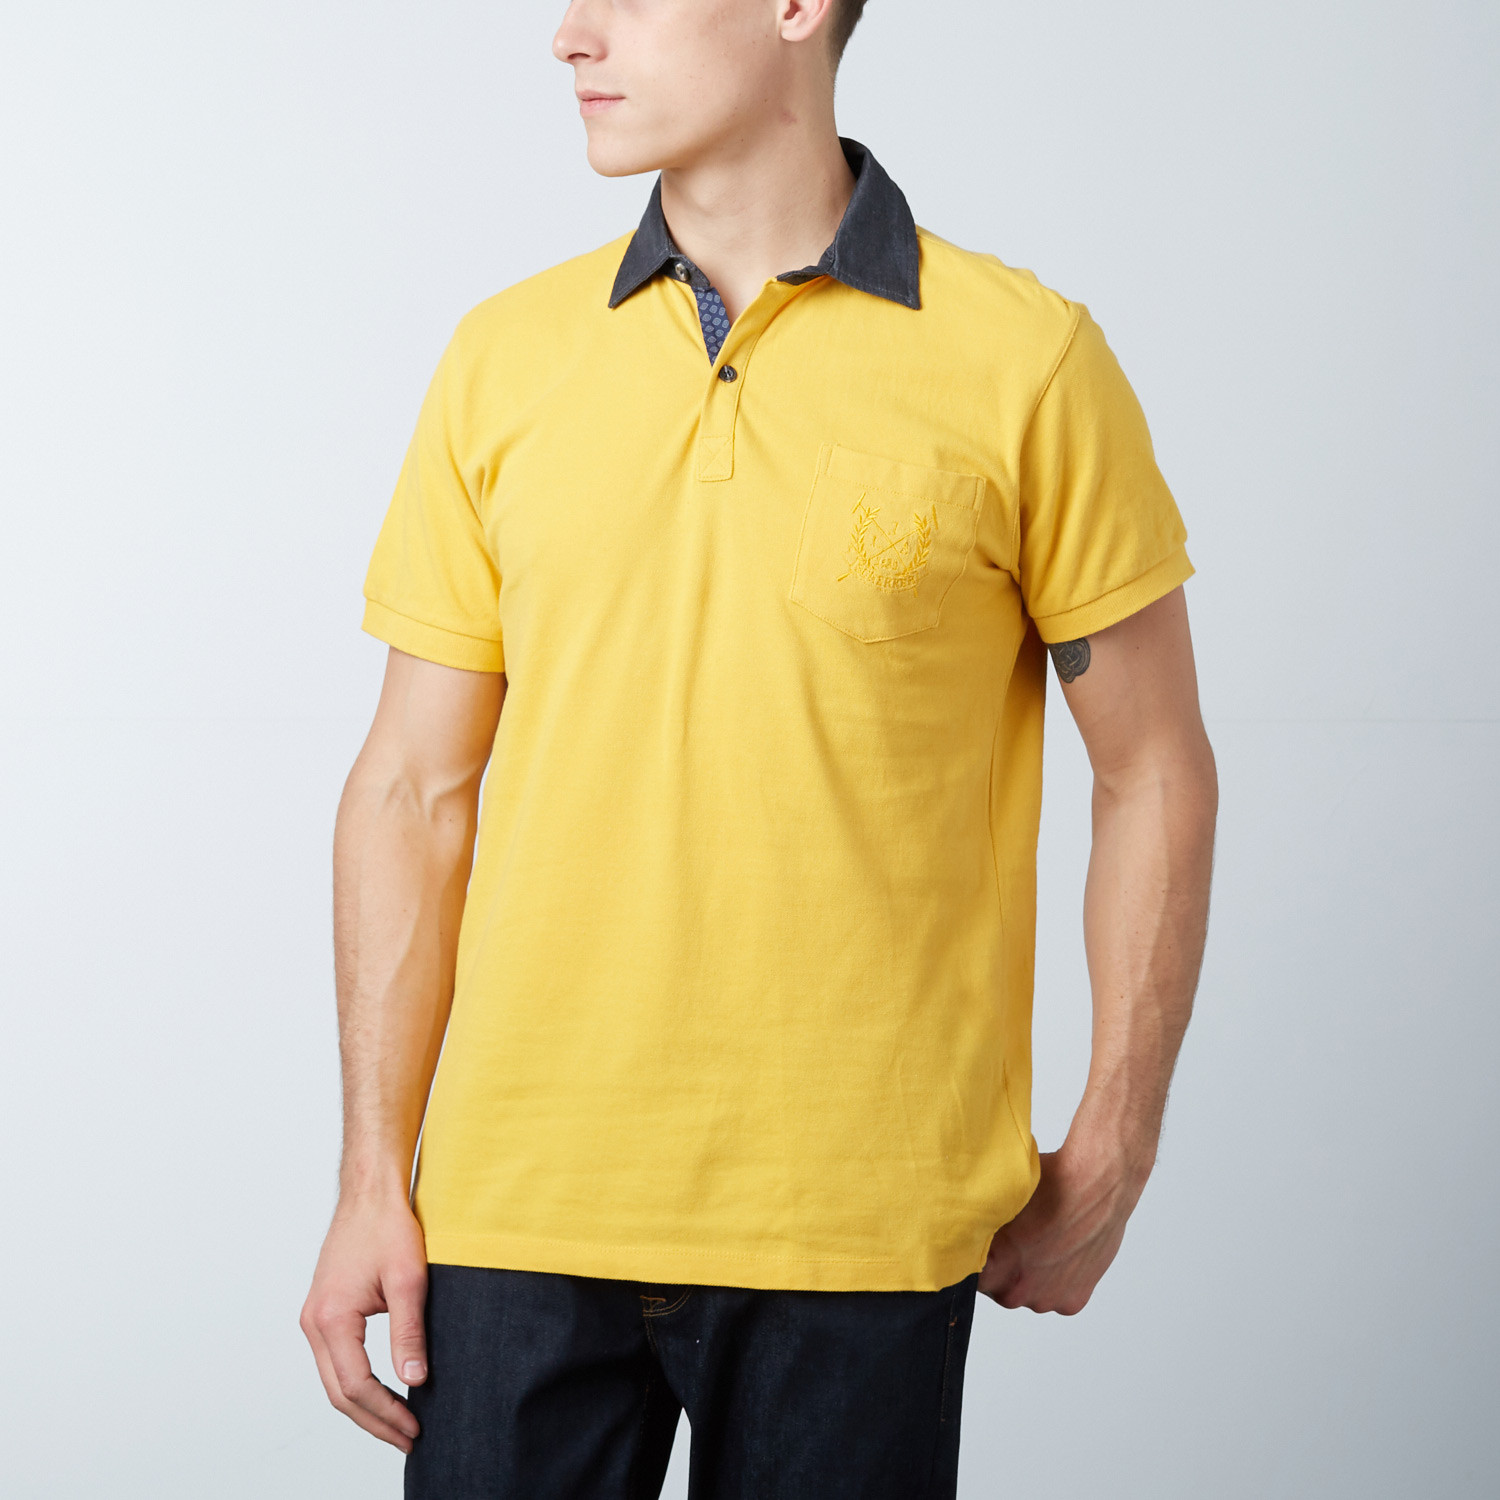 men 39 s polo shirt yellow geo print s jean louis. Black Bedroom Furniture Sets. Home Design Ideas